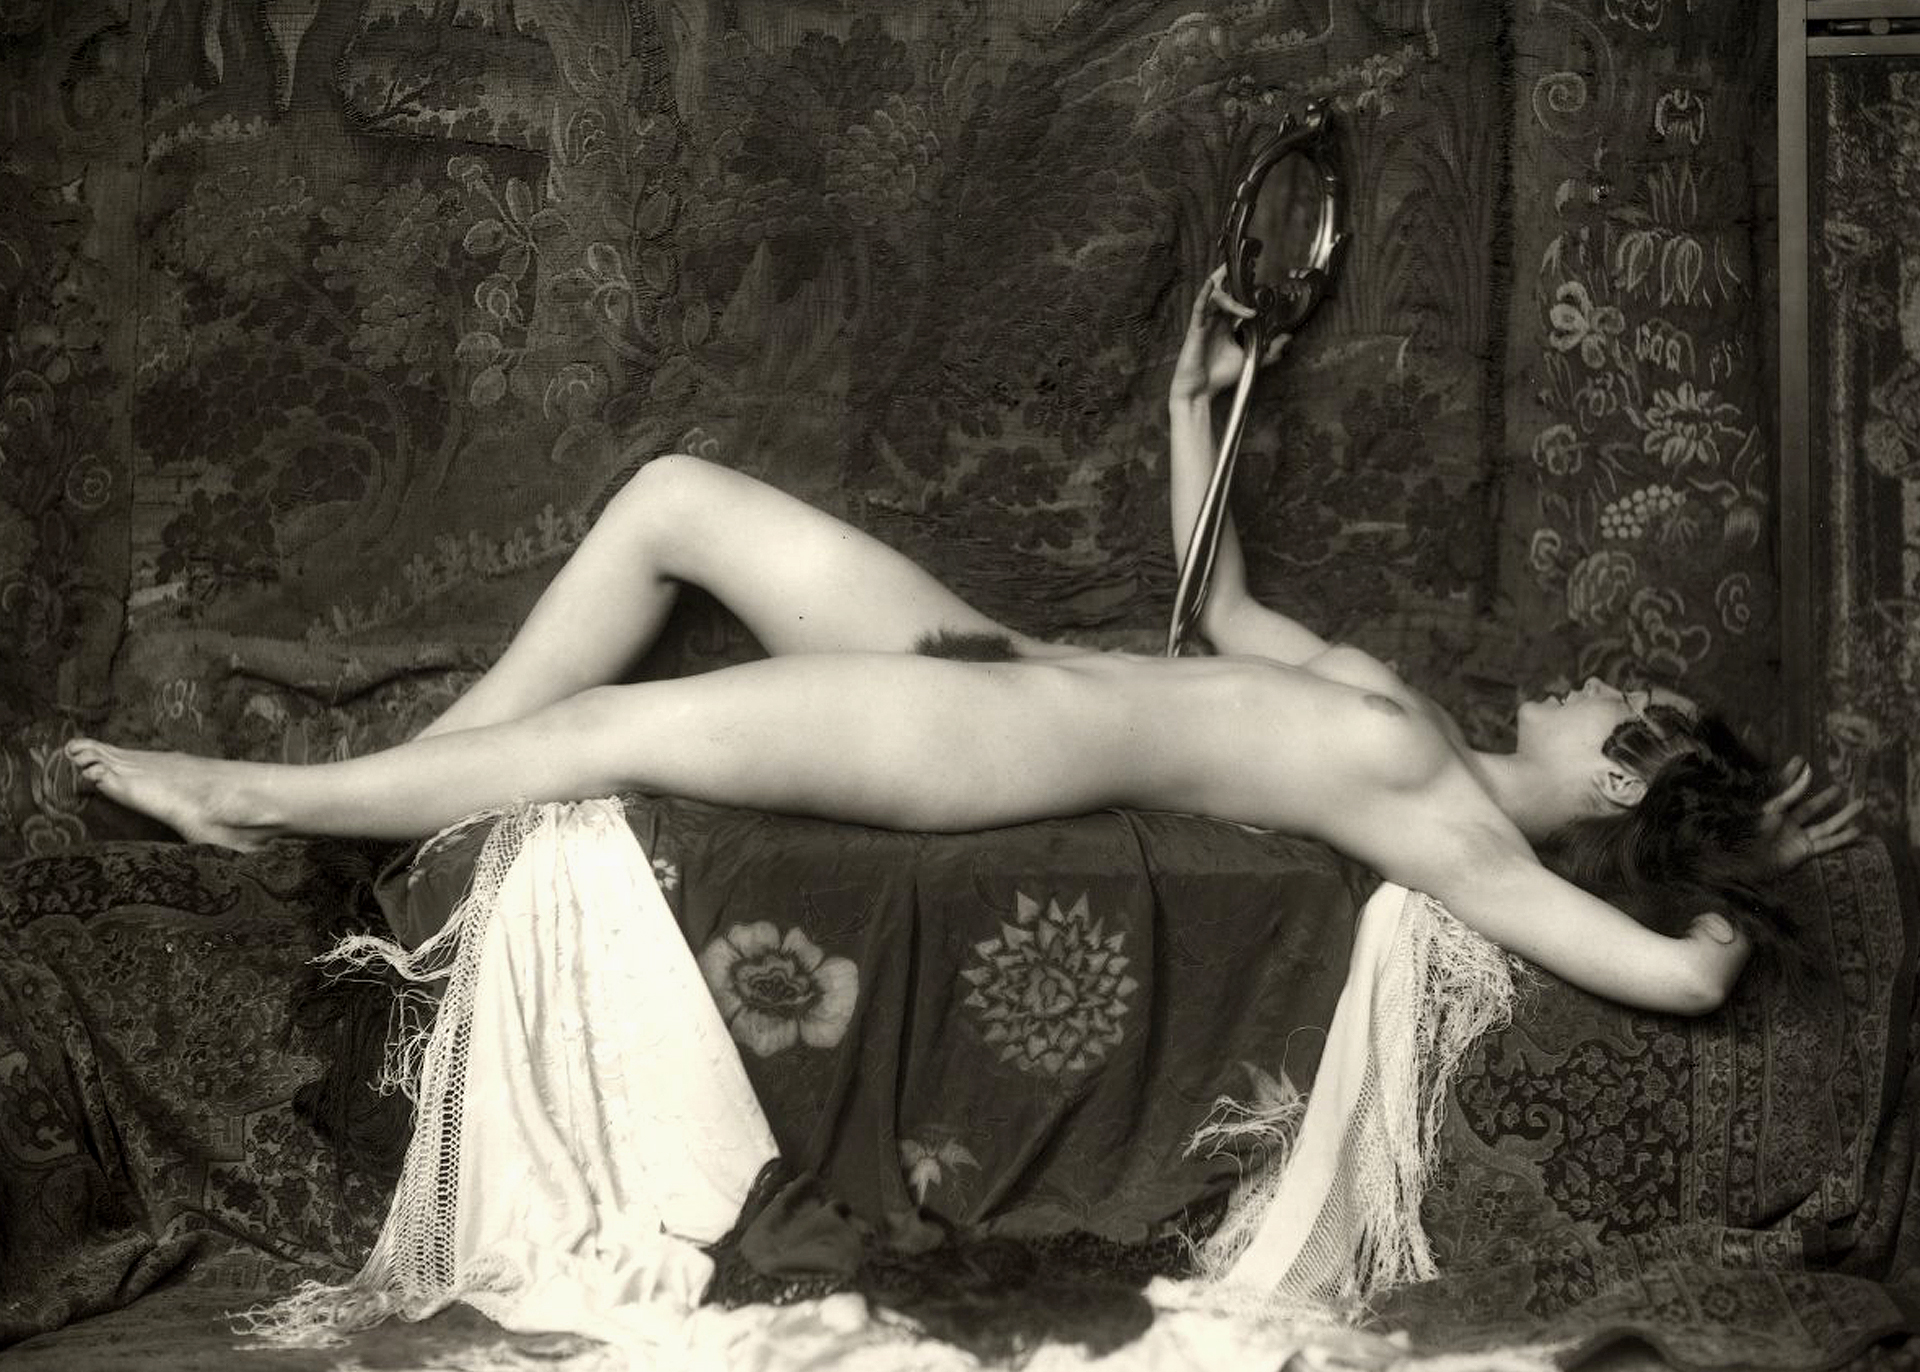 PHOTOGRAPHY : ALFRED CHENEY JOHNSTON